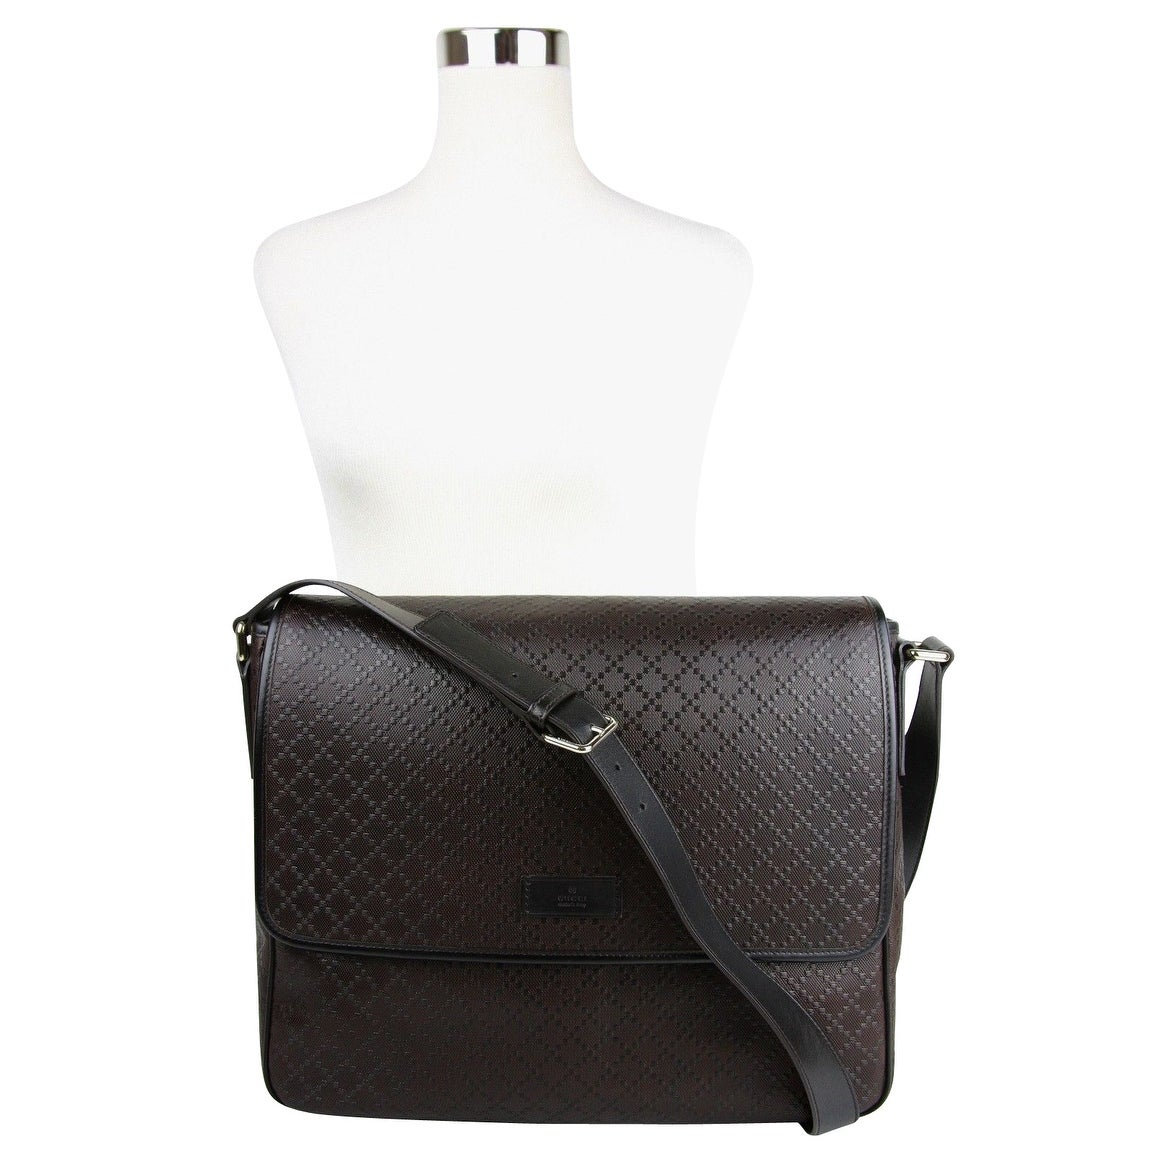 18134444aa03 Shop Gucci Men's Hilary Lux Dark Brown Diamante Leather Messenger Bag  223665 2044 - One size - Free Shipping Today - Overstock - 27603112